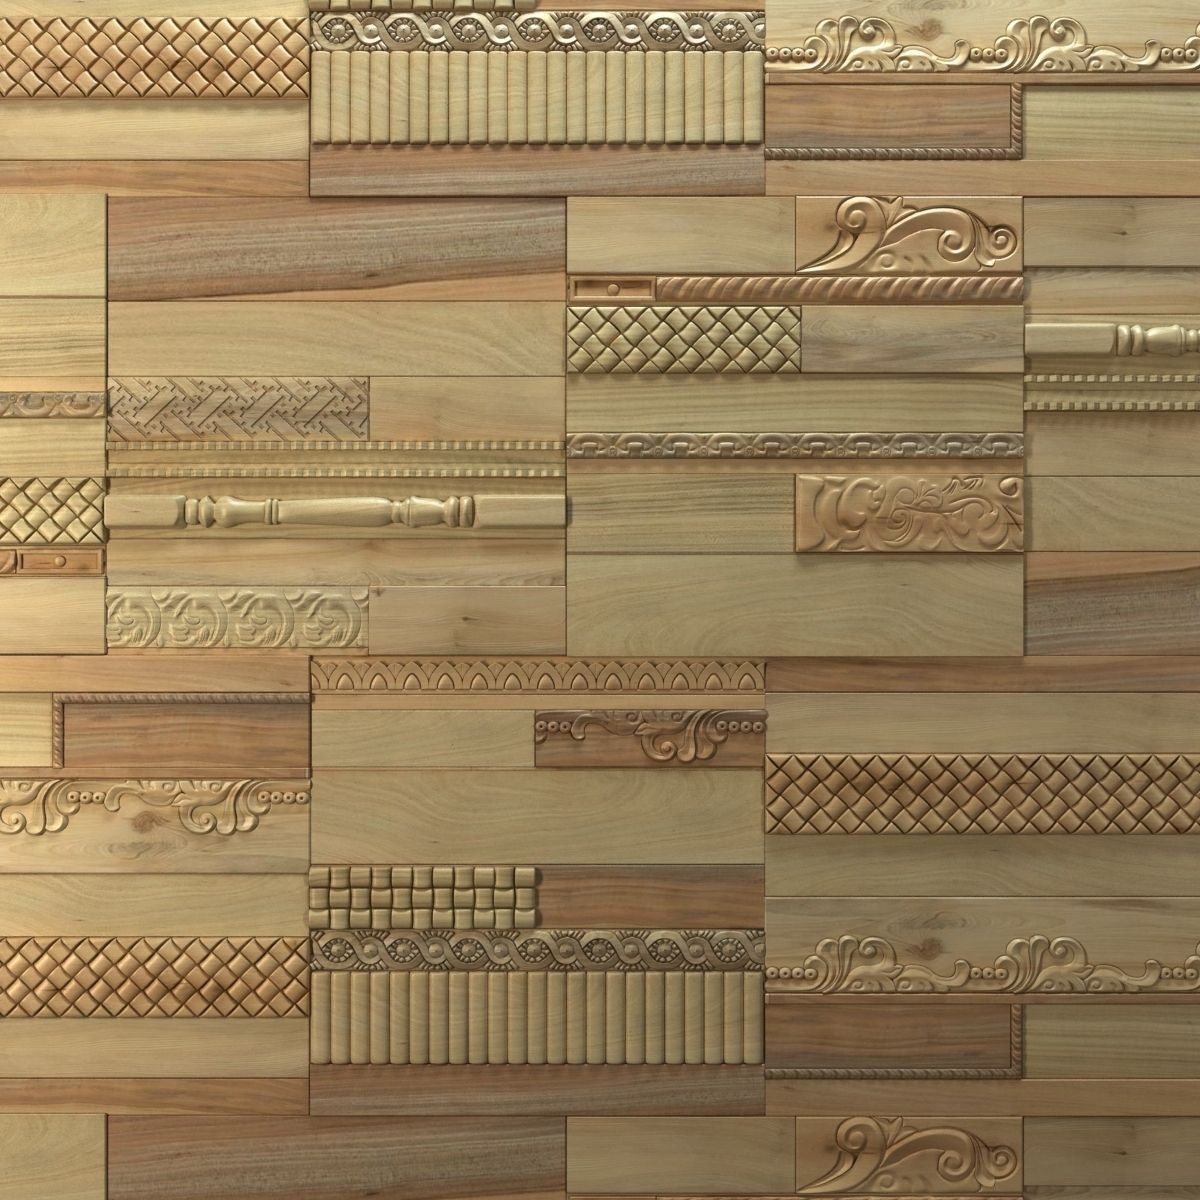 Wanderwall Phoenix 3d Wall Wood Tiles 3D Model .max .obj .fbx